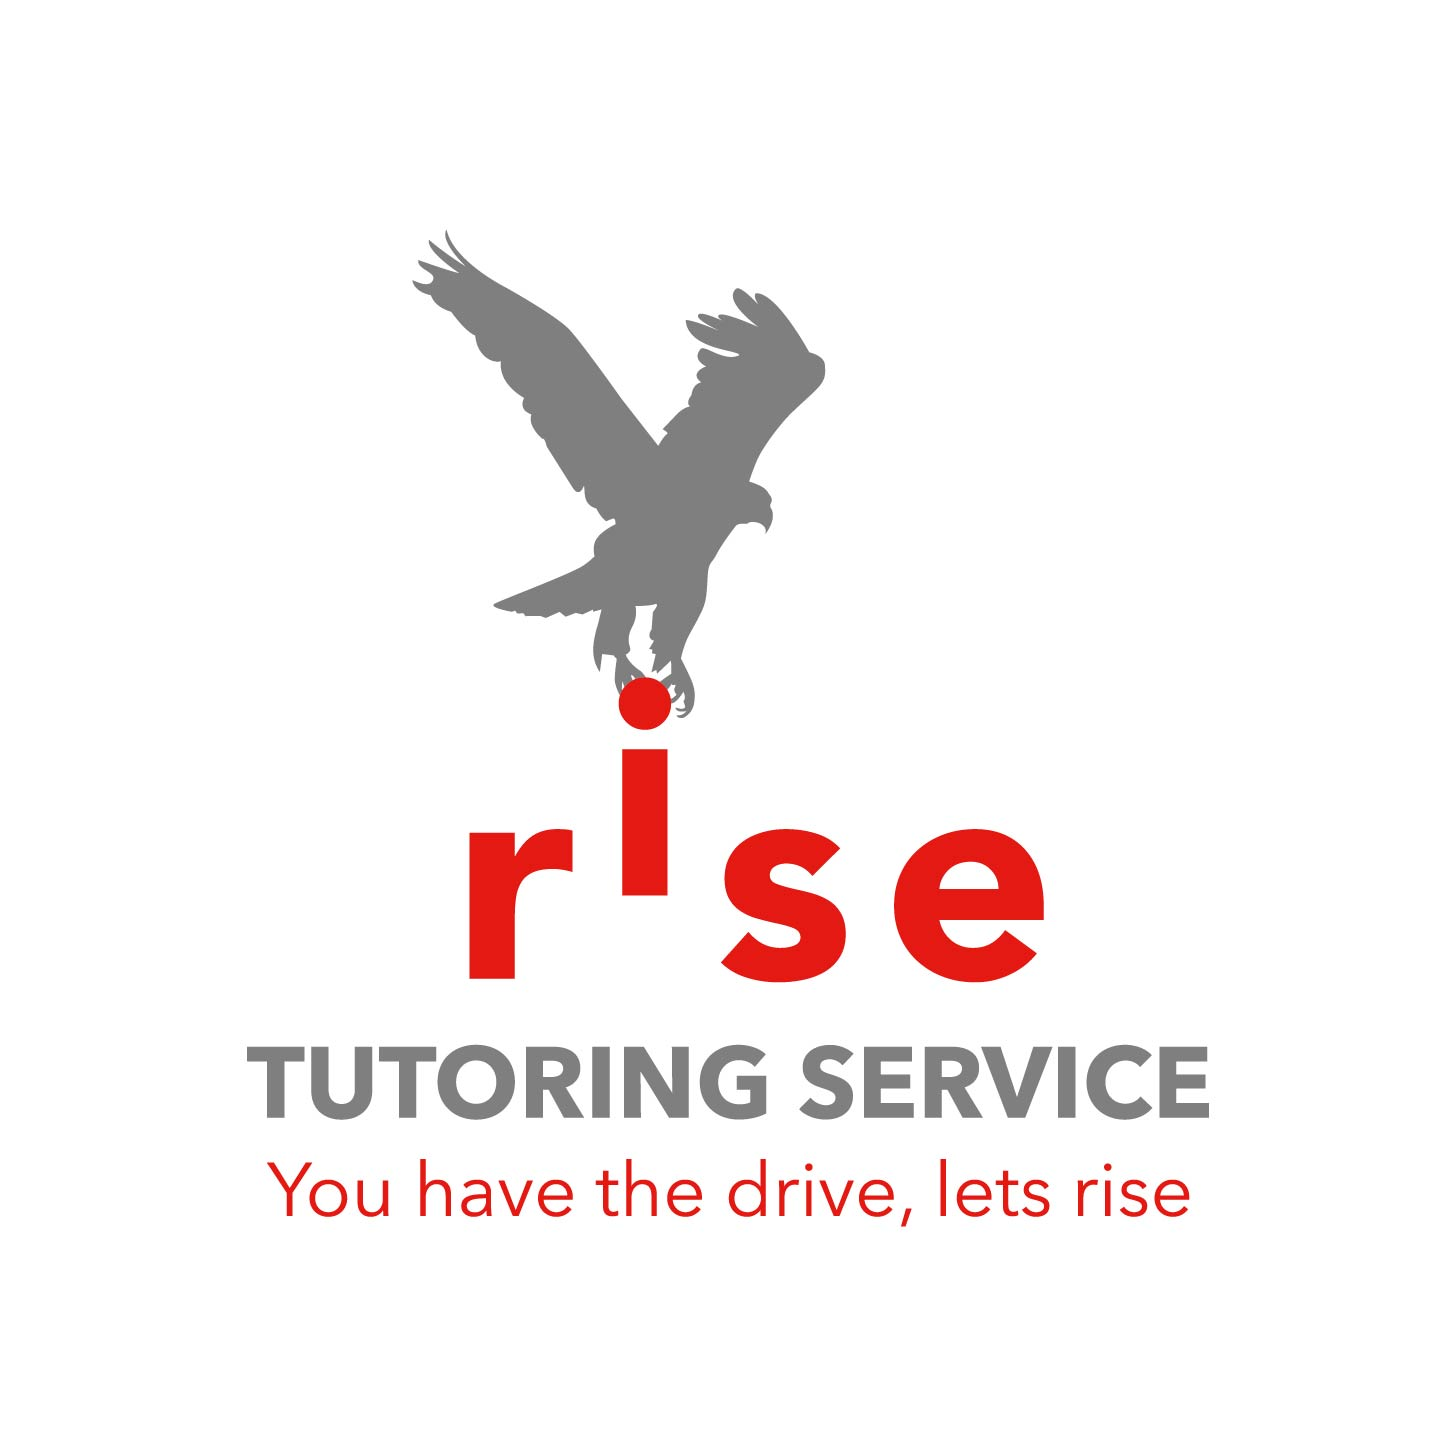 Logo Design by Cross Desain - Entry No. 86 in the Logo Design Contest Imaginative Logo Design for Rise Tutoring Service.